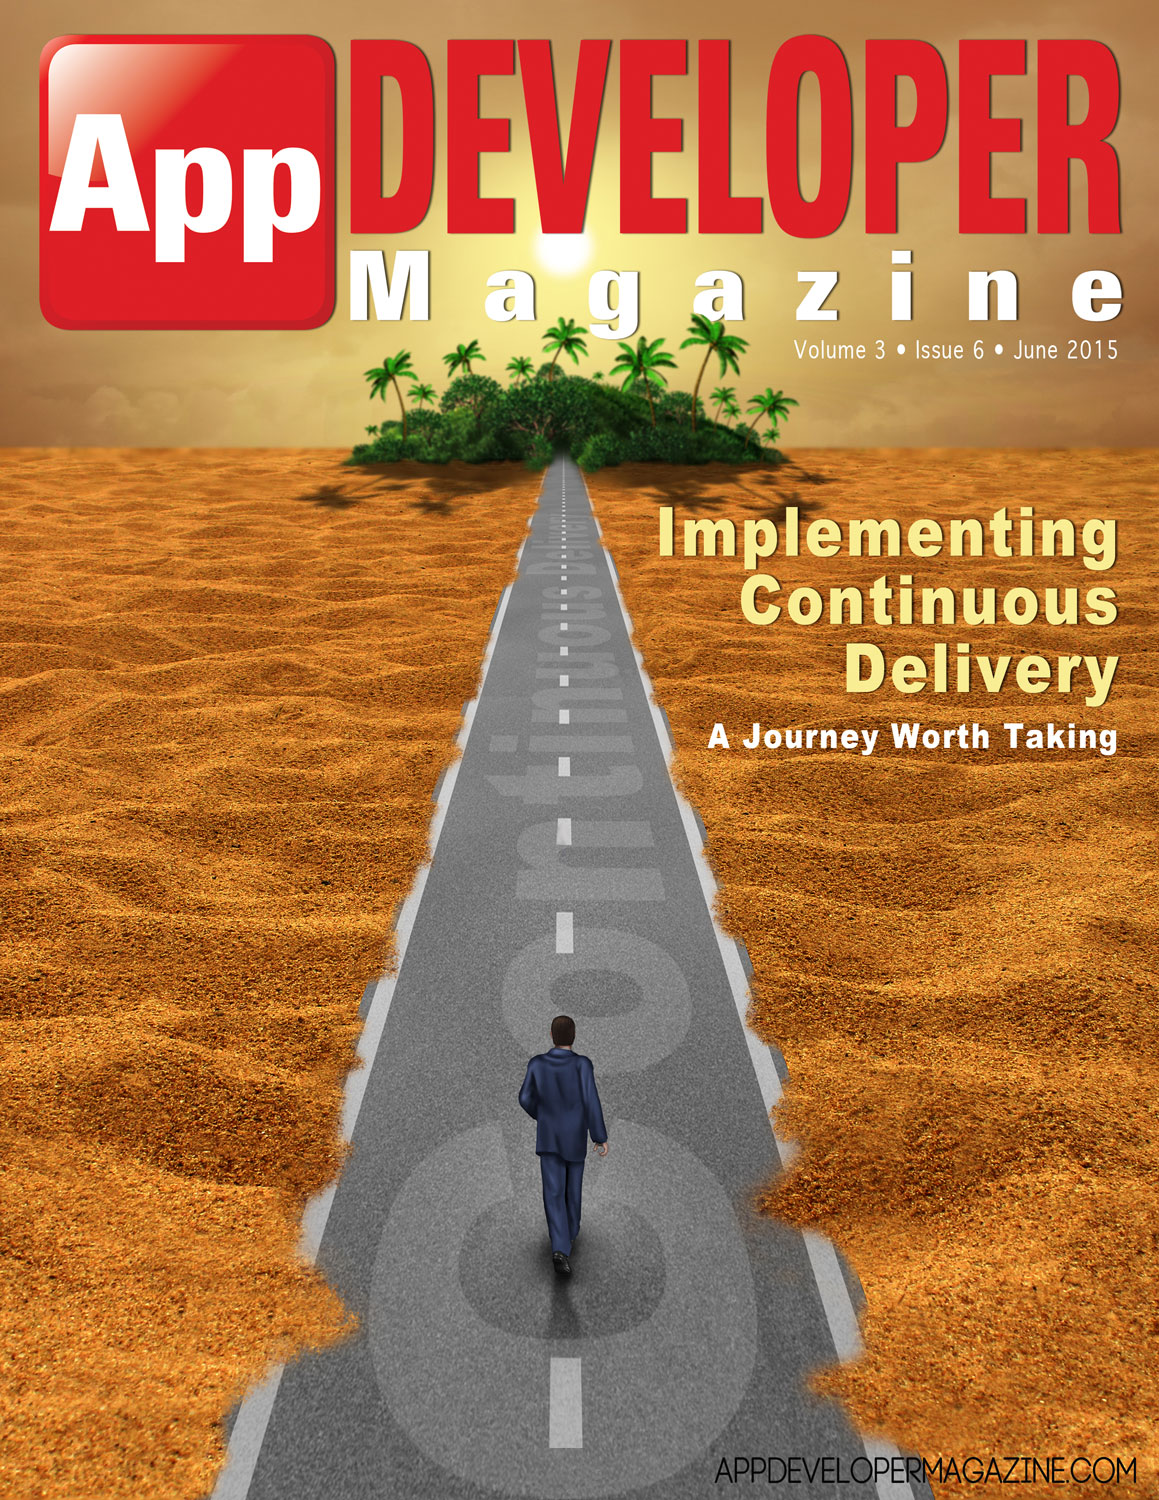 App Developer Magazine June 2015